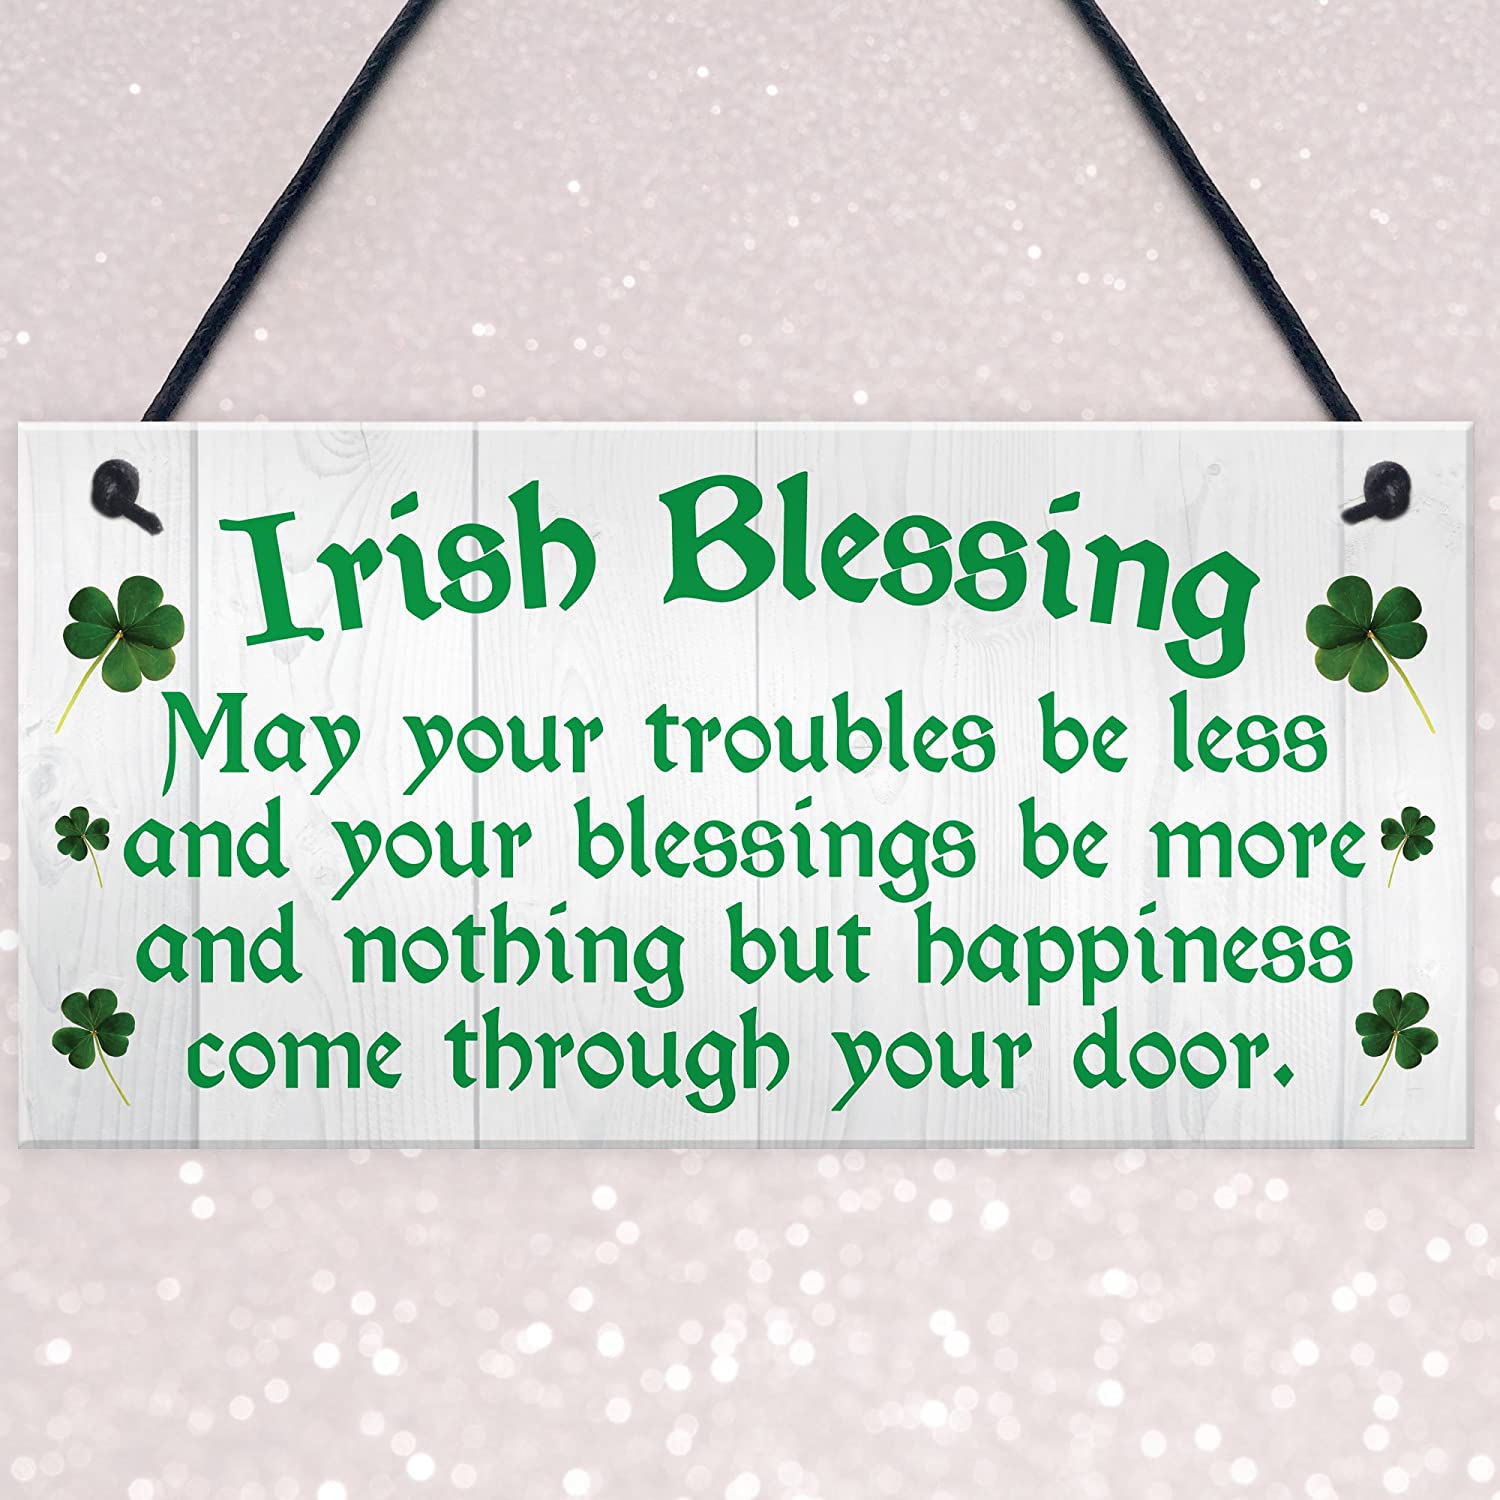 Red Ocean Irish Blessing Happiness Friendship Gift Plaque St Patricks Day Lucky House Sign